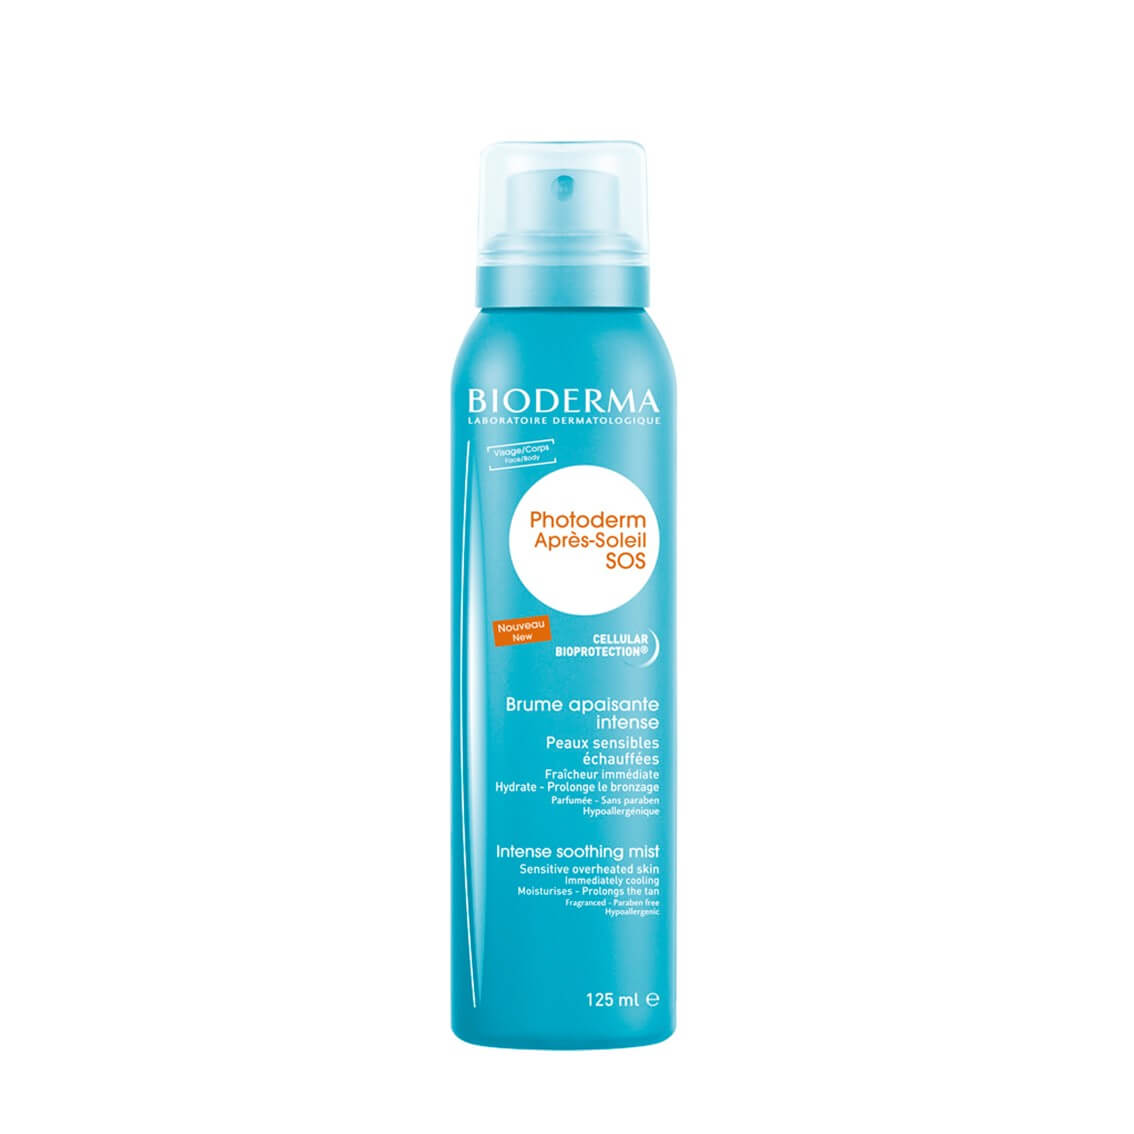 Photoderm Apres-Soleil SOS Aftersun Spray 125 ml